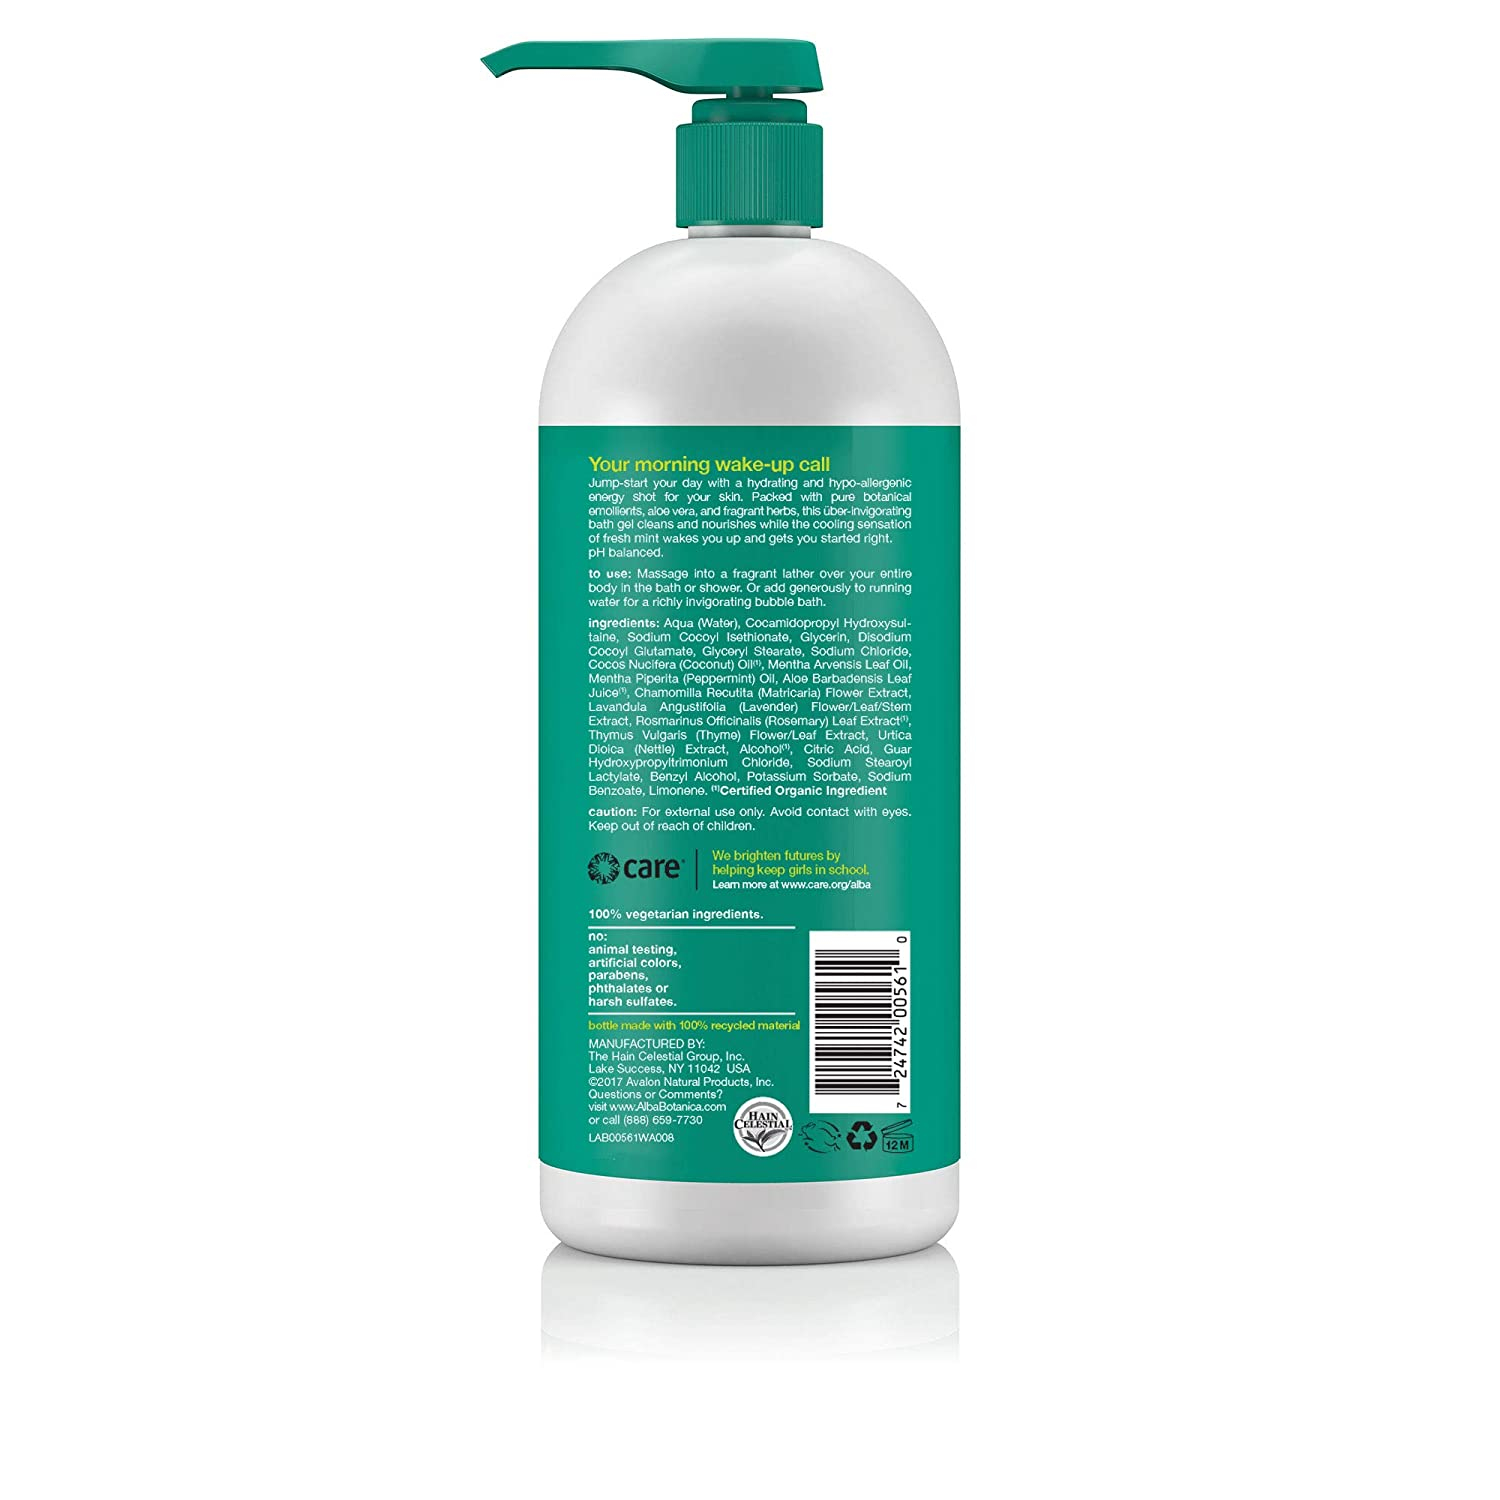 Alba Botanica Very Emollient Sparkling Mint Bath & Shower Gel, 32 oz